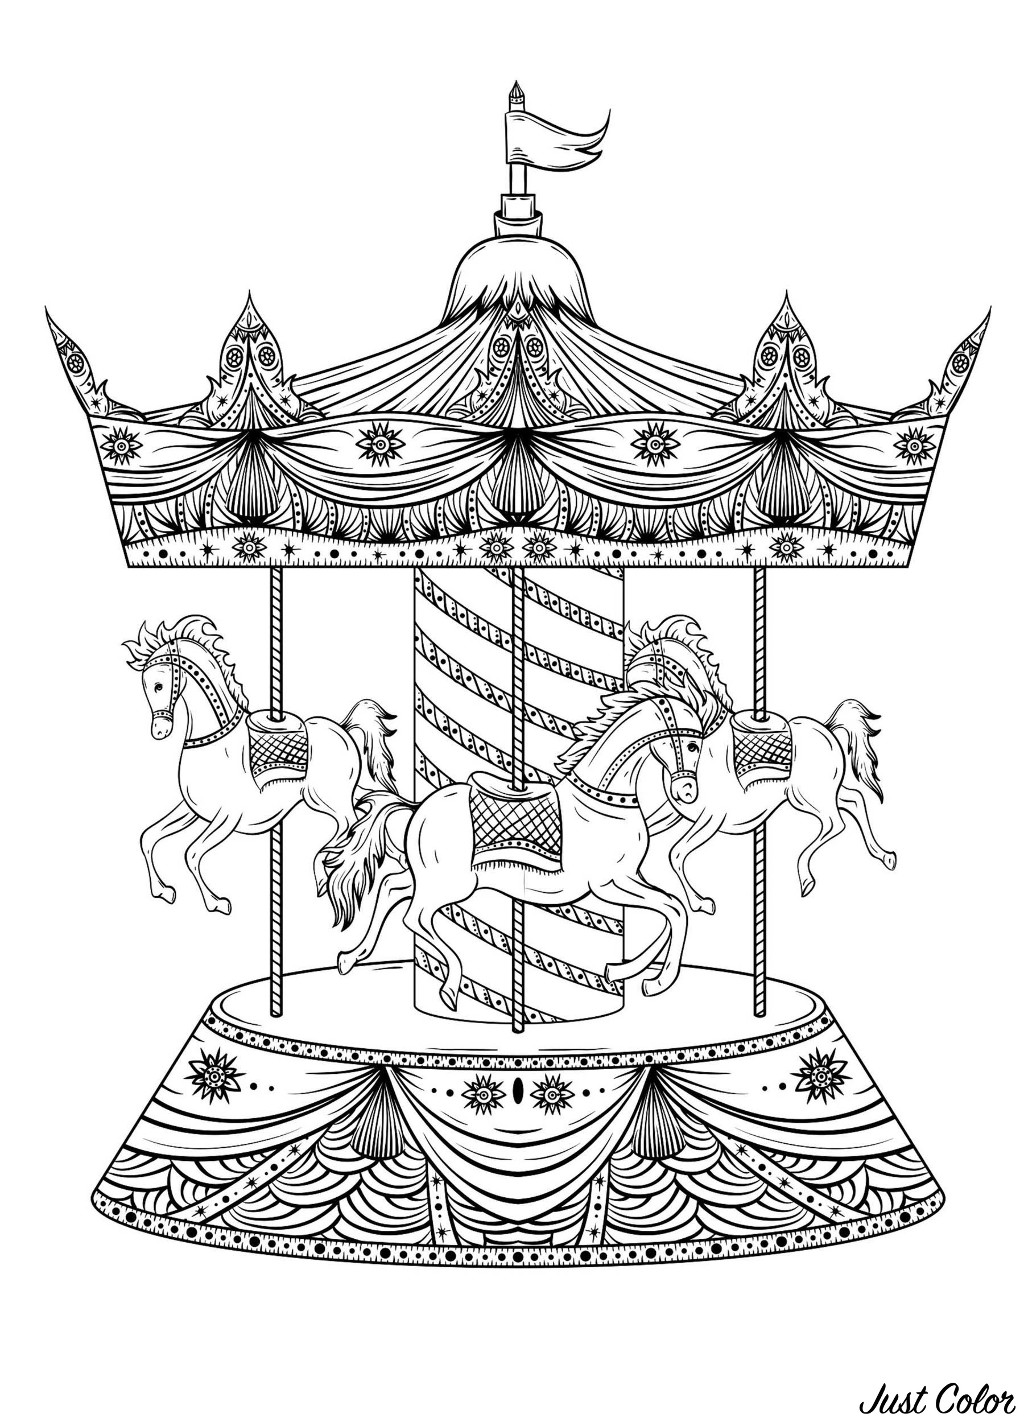 Horse coloring page to download for free : carousel with horse